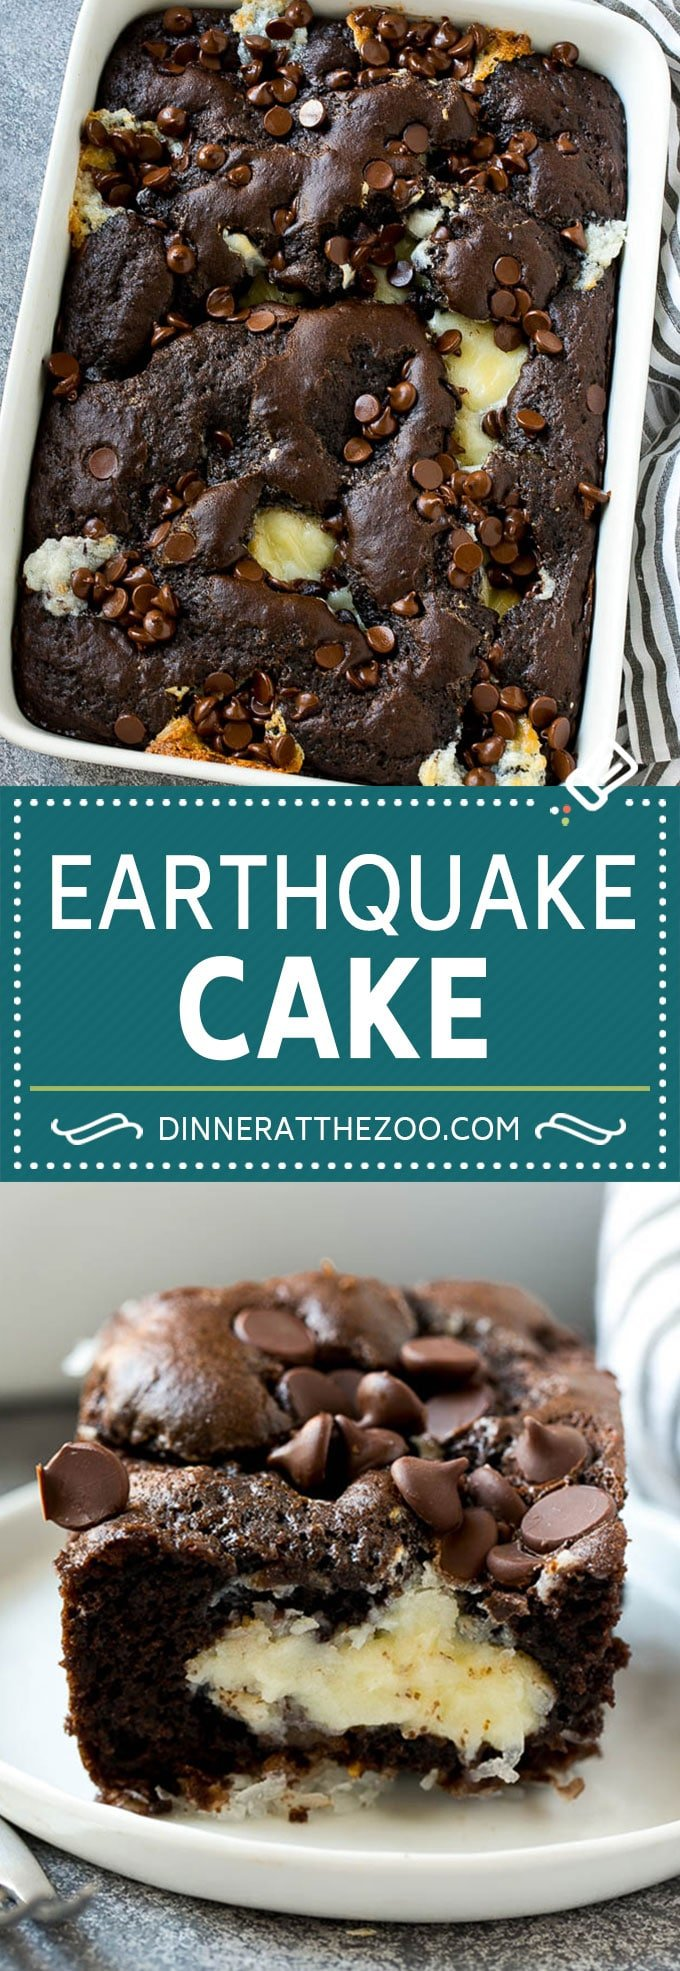 Earthquake Cake Recipe | Chocolate Cake Recipe | Chocolate Coconut Cake | Coconut Pecan Cake